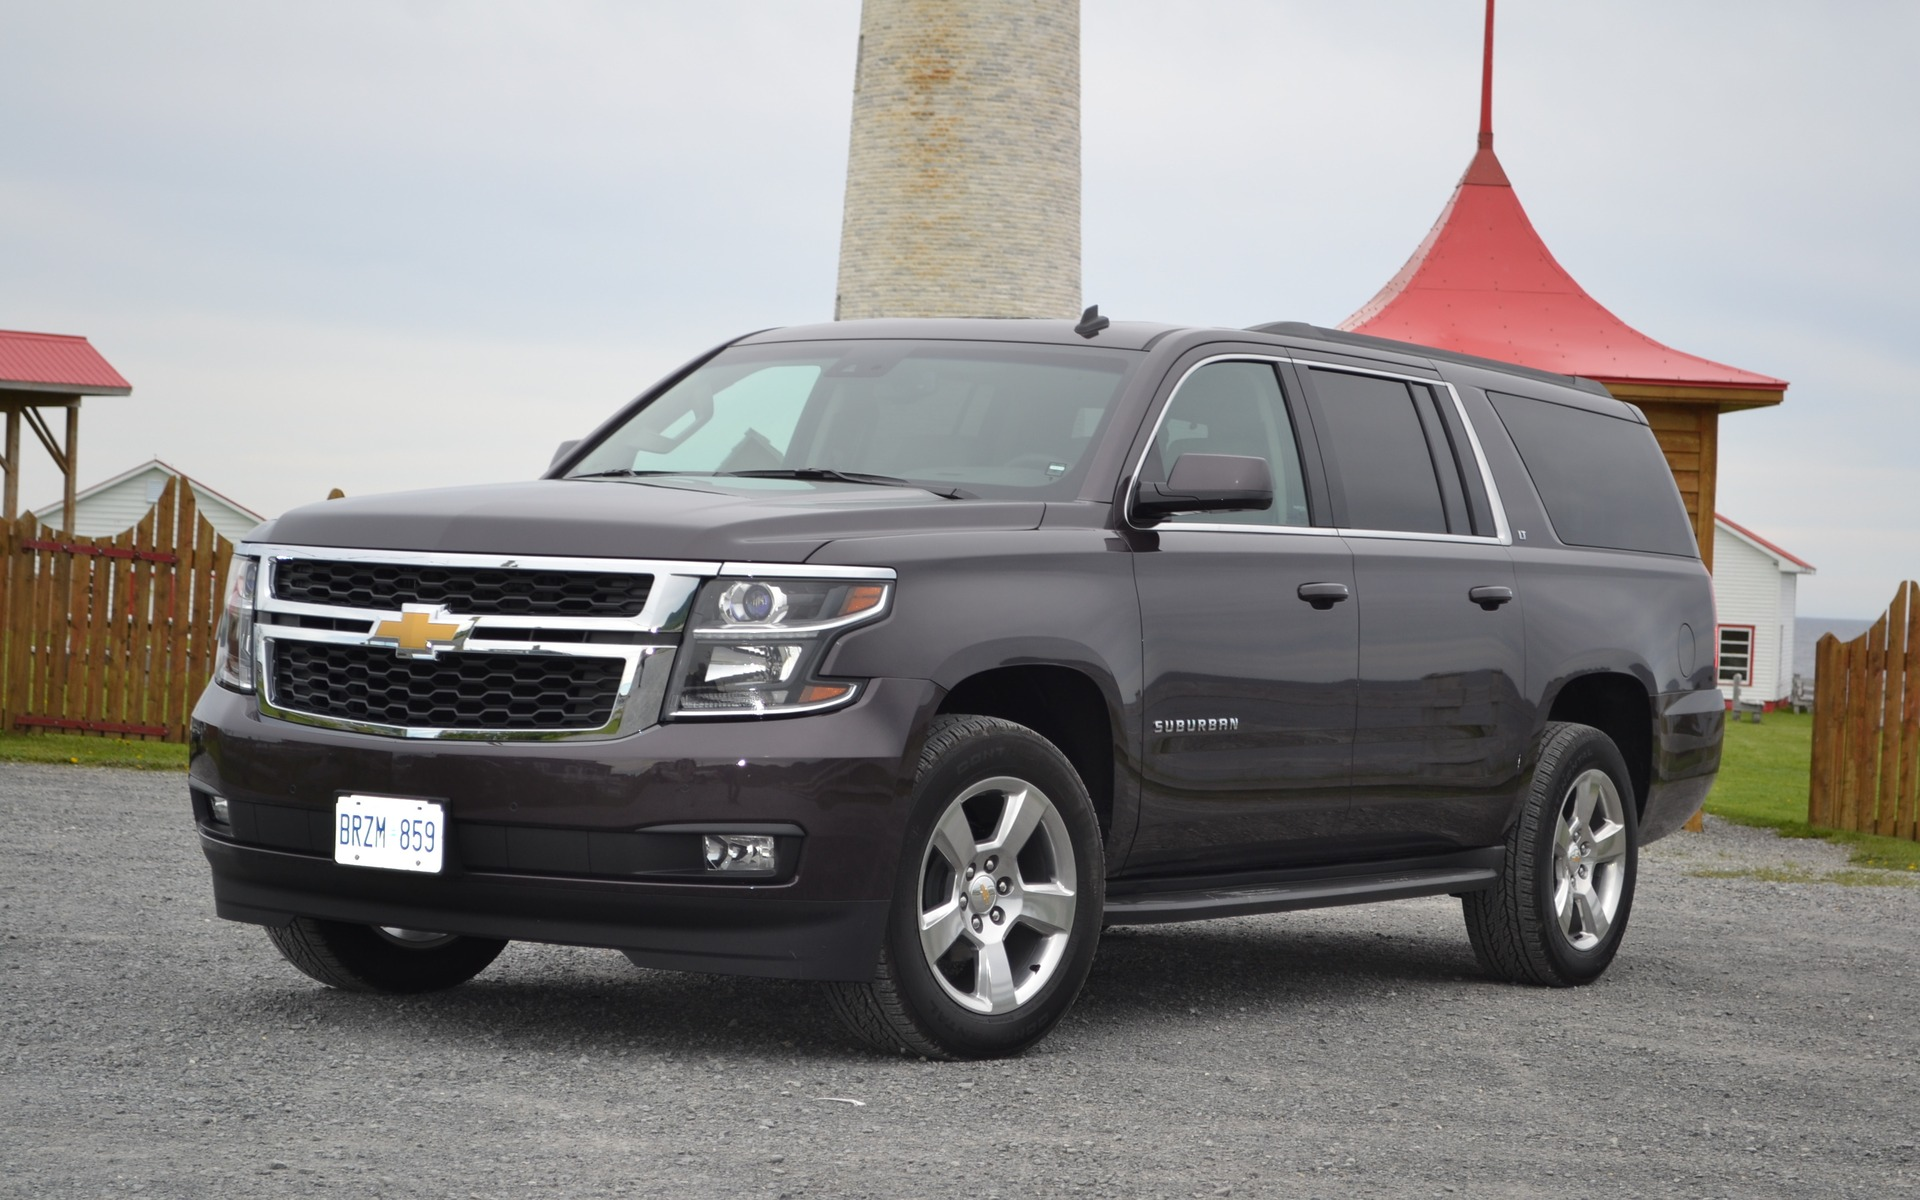 2016 Chevrolet Suburban News Reviews Picture Galleries And Hhr Onstar Wiring Diagram Videos The Car Guide